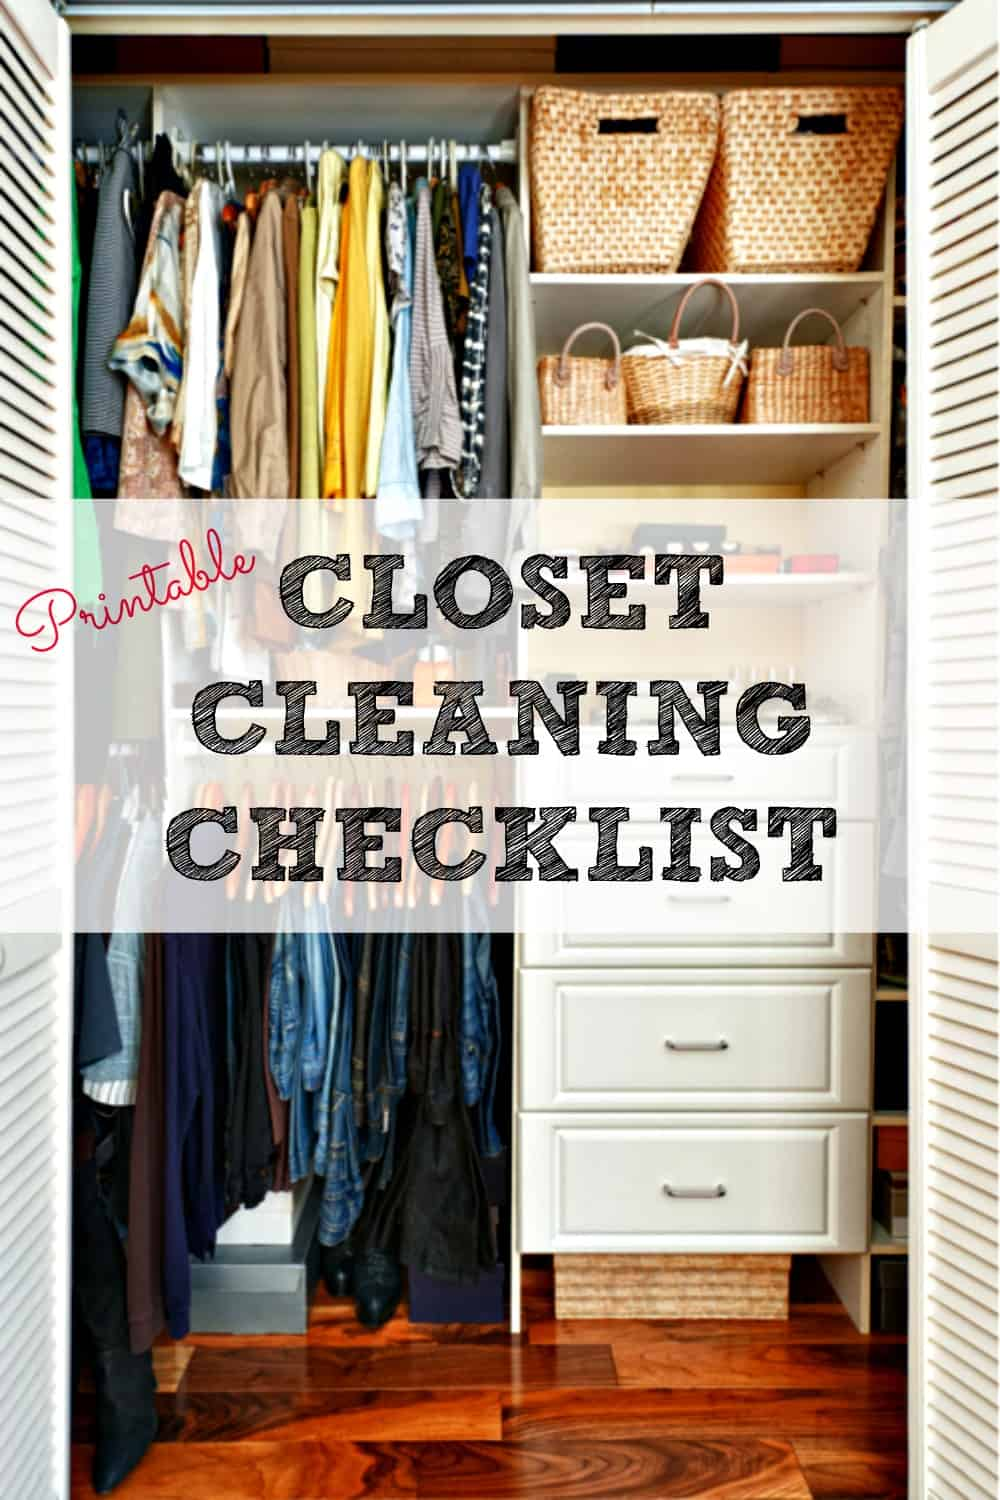 Get your closet totally organized with the free printable closet cleaning checklist, then keep it that way with the weekly closet tidying checklist, too!